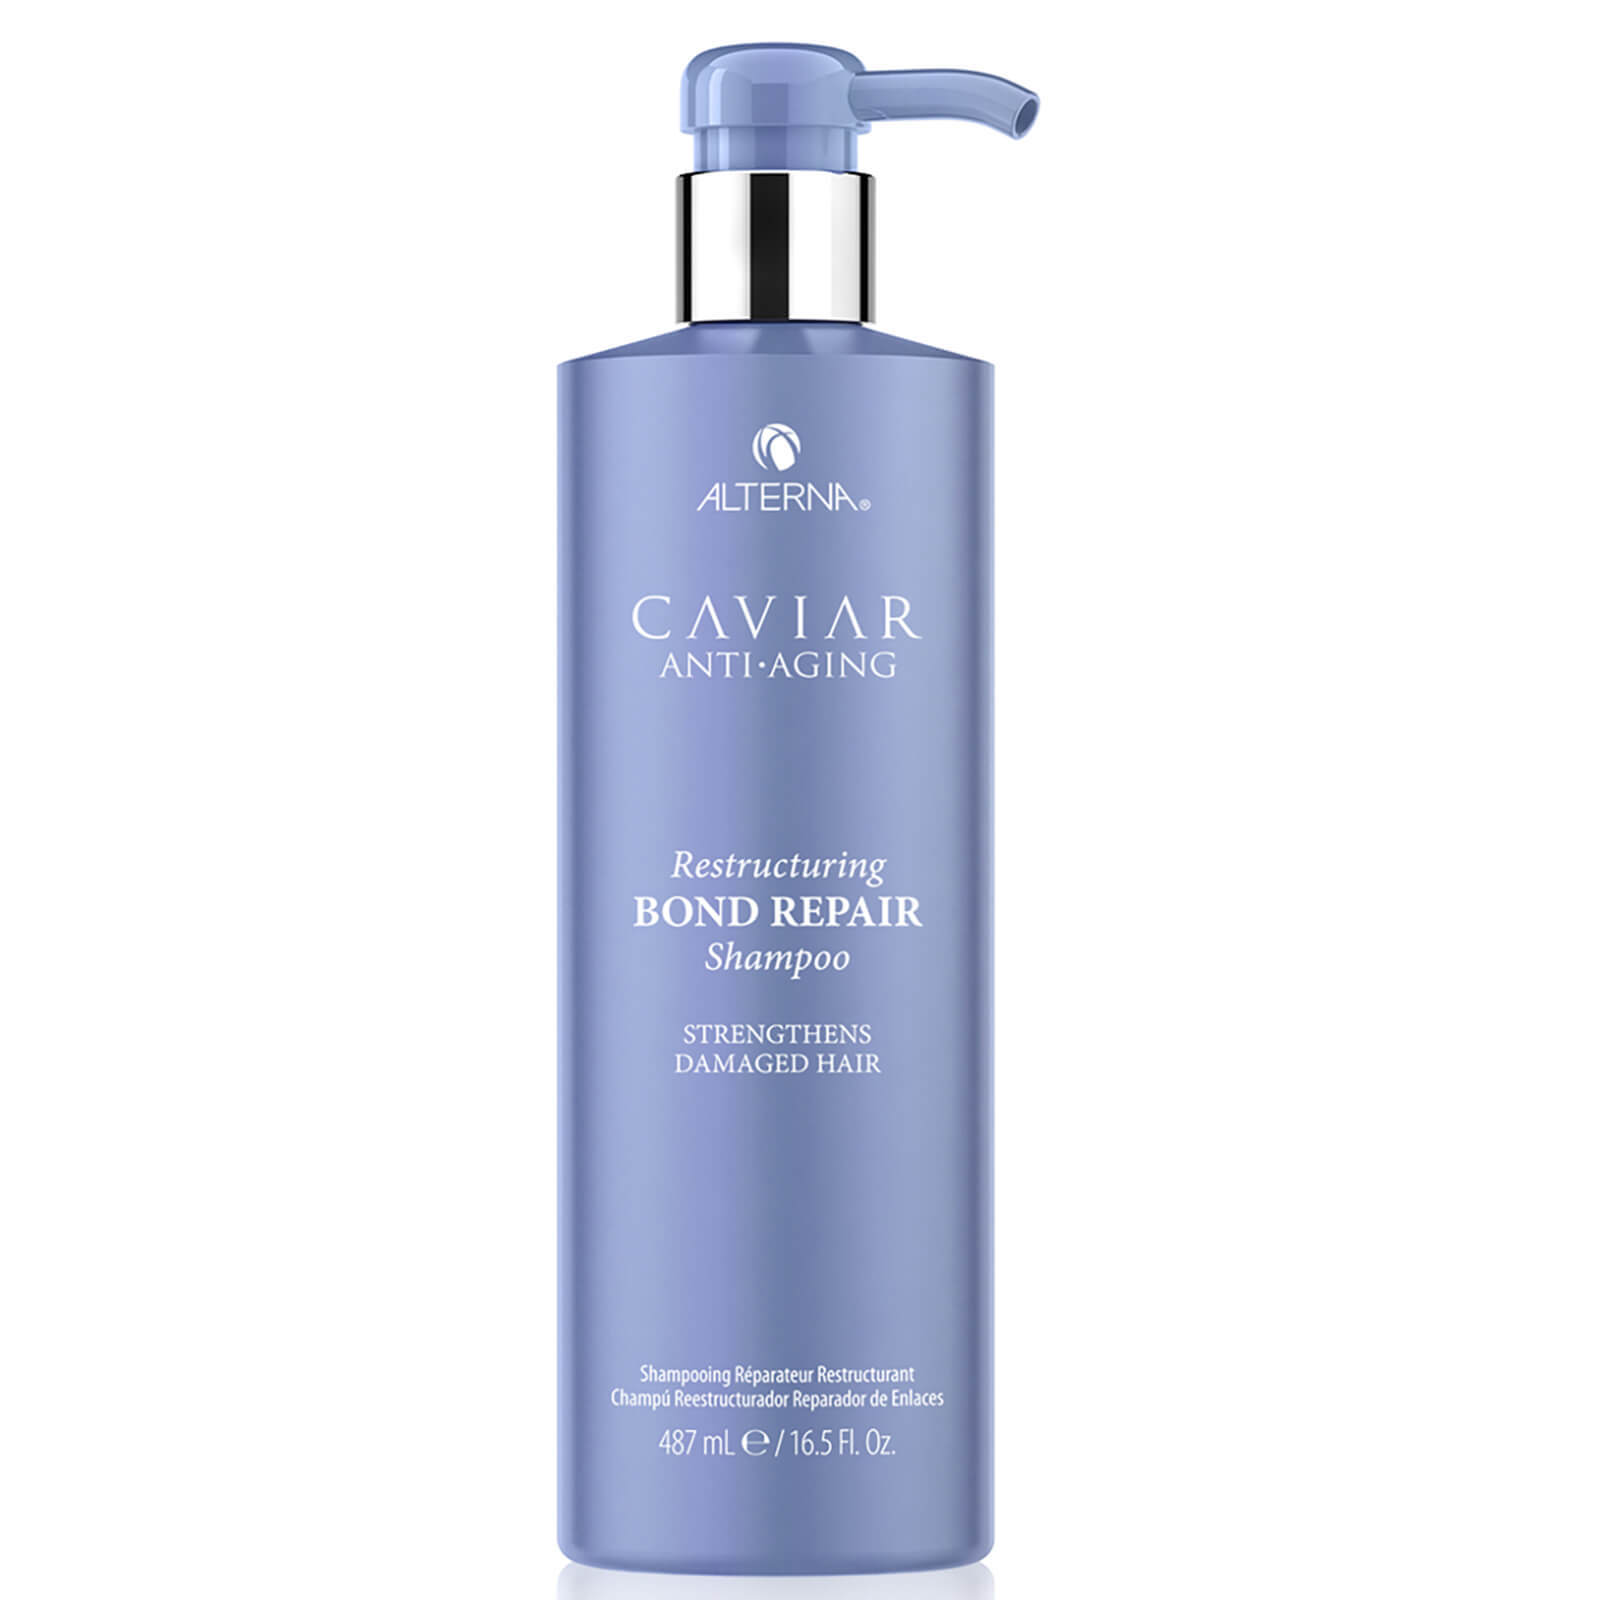 Primary image for Alterna Caviar Anti-Aging Restructuring Bond Repair Shampoo 16.5oz